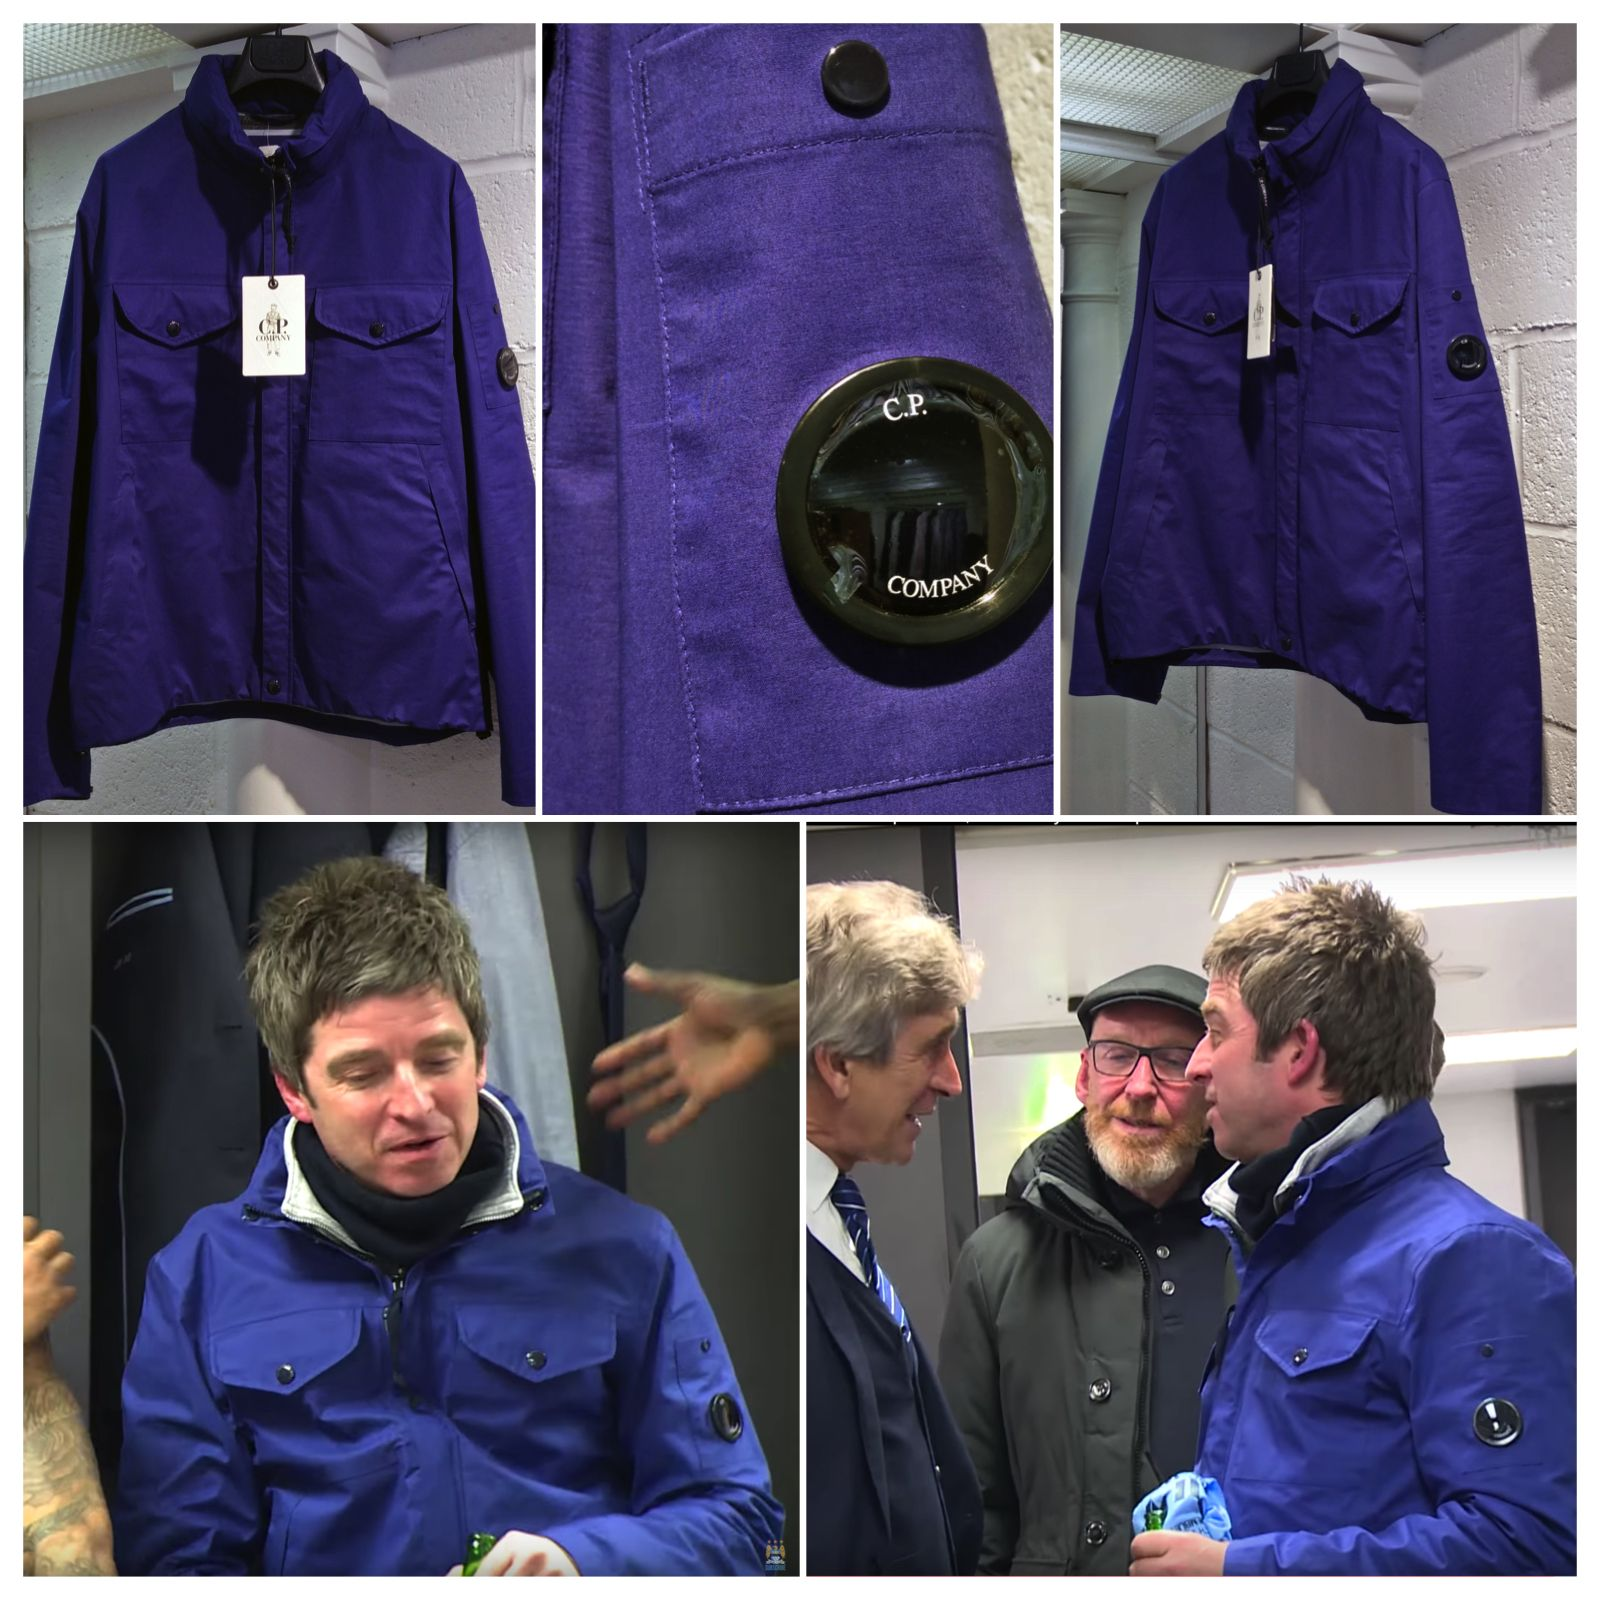 f5f4d076fc Get your C.P. COMPANY Jacket as worn by Oasis frontman Noel Gallagher at  the Man City